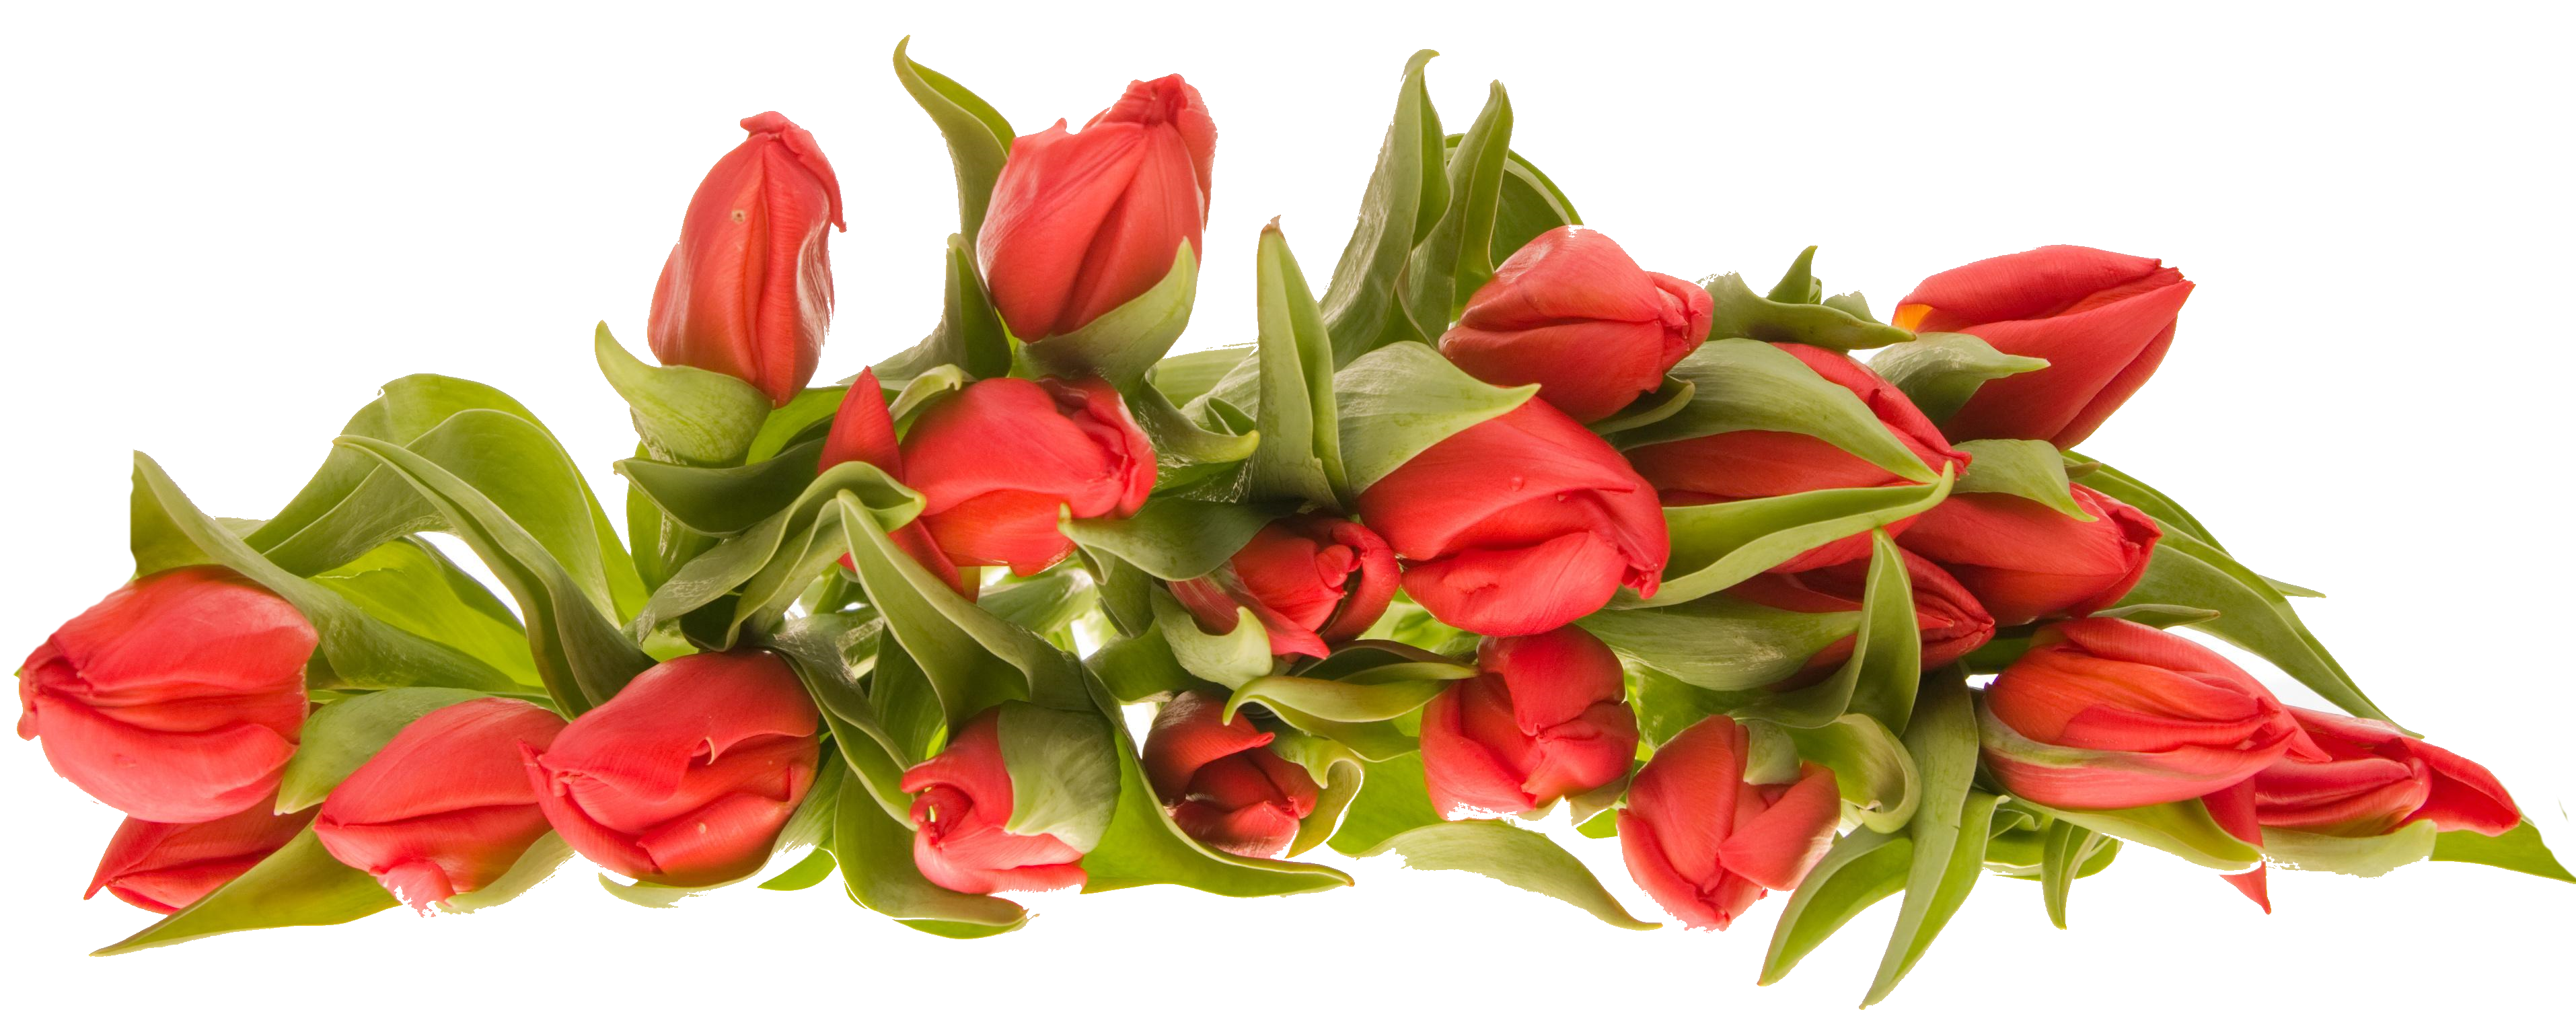 bouquet flowers images hd photo #8199